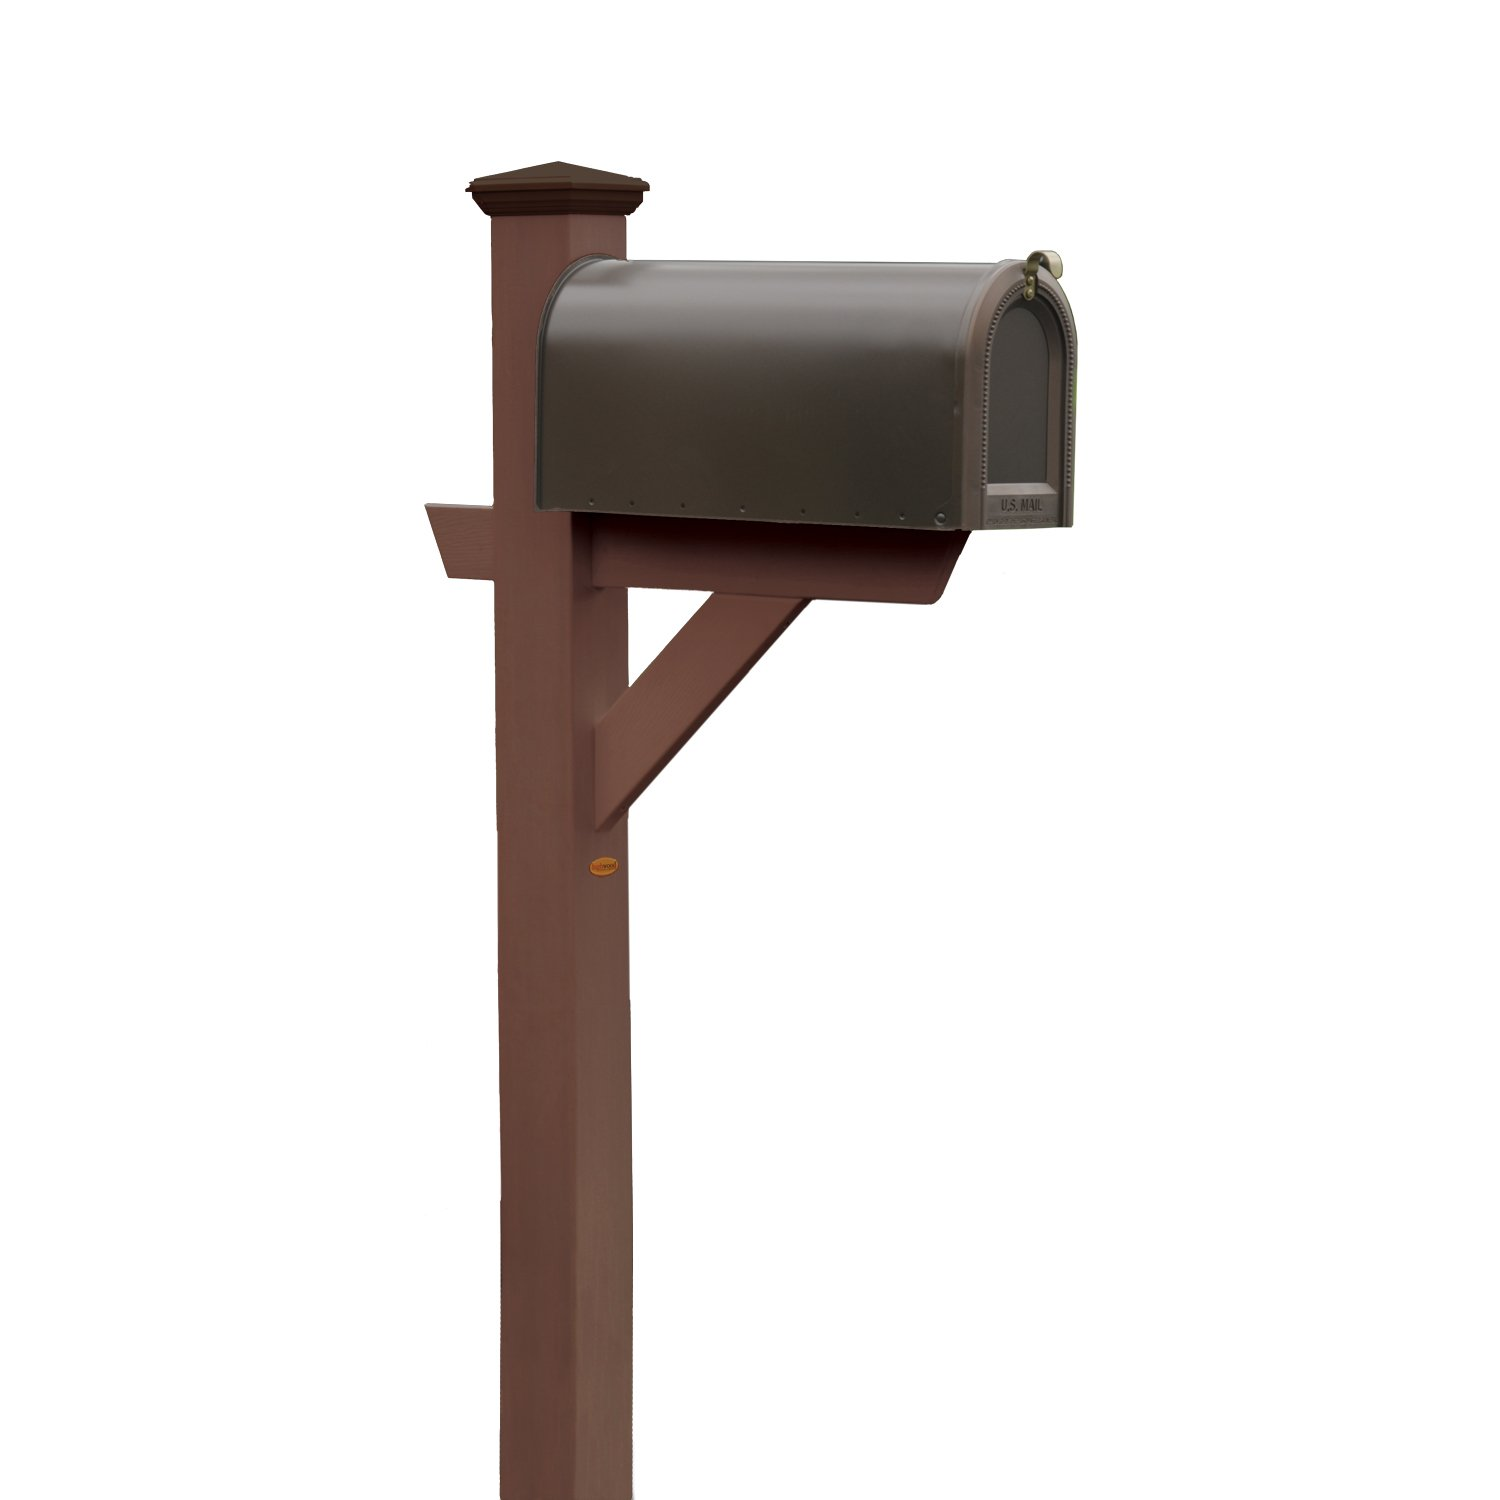 Phat Tommy Outdoor Recycled Poly Highwood Mailbox Post–Made in USA, Eco-Friendly Patio Furniture, Clearance by Phat Tommy